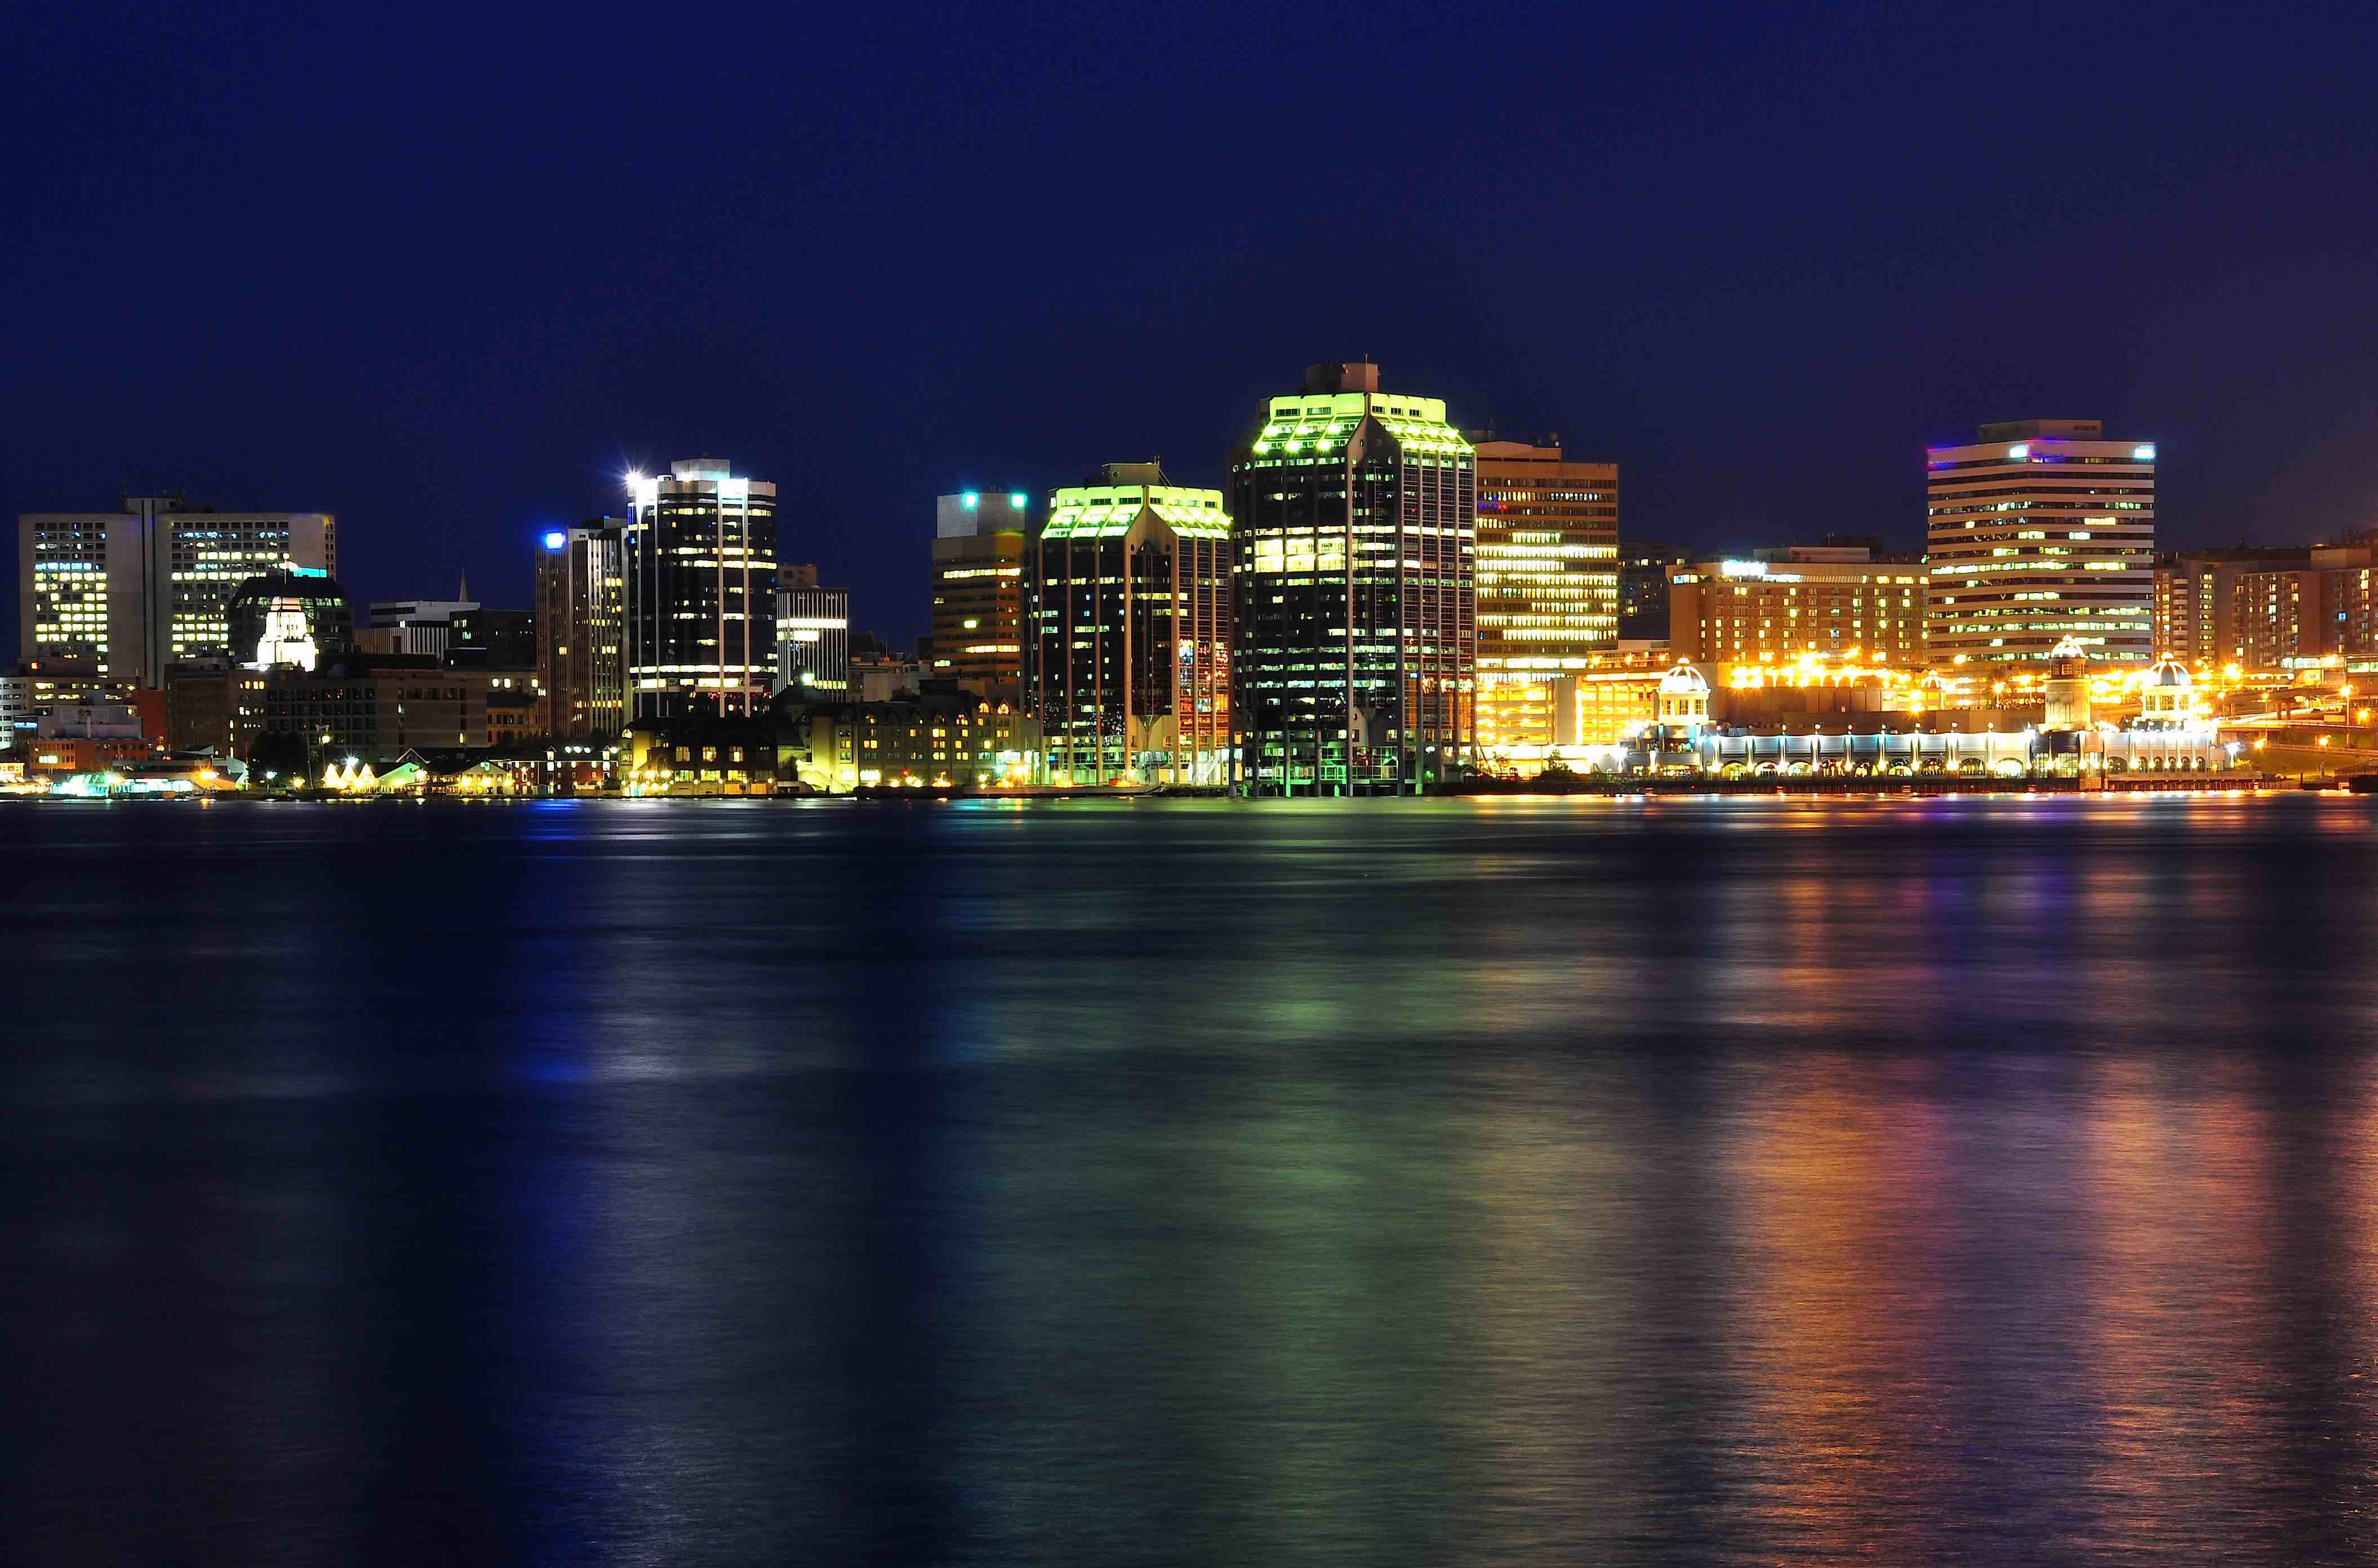 Halifax at night